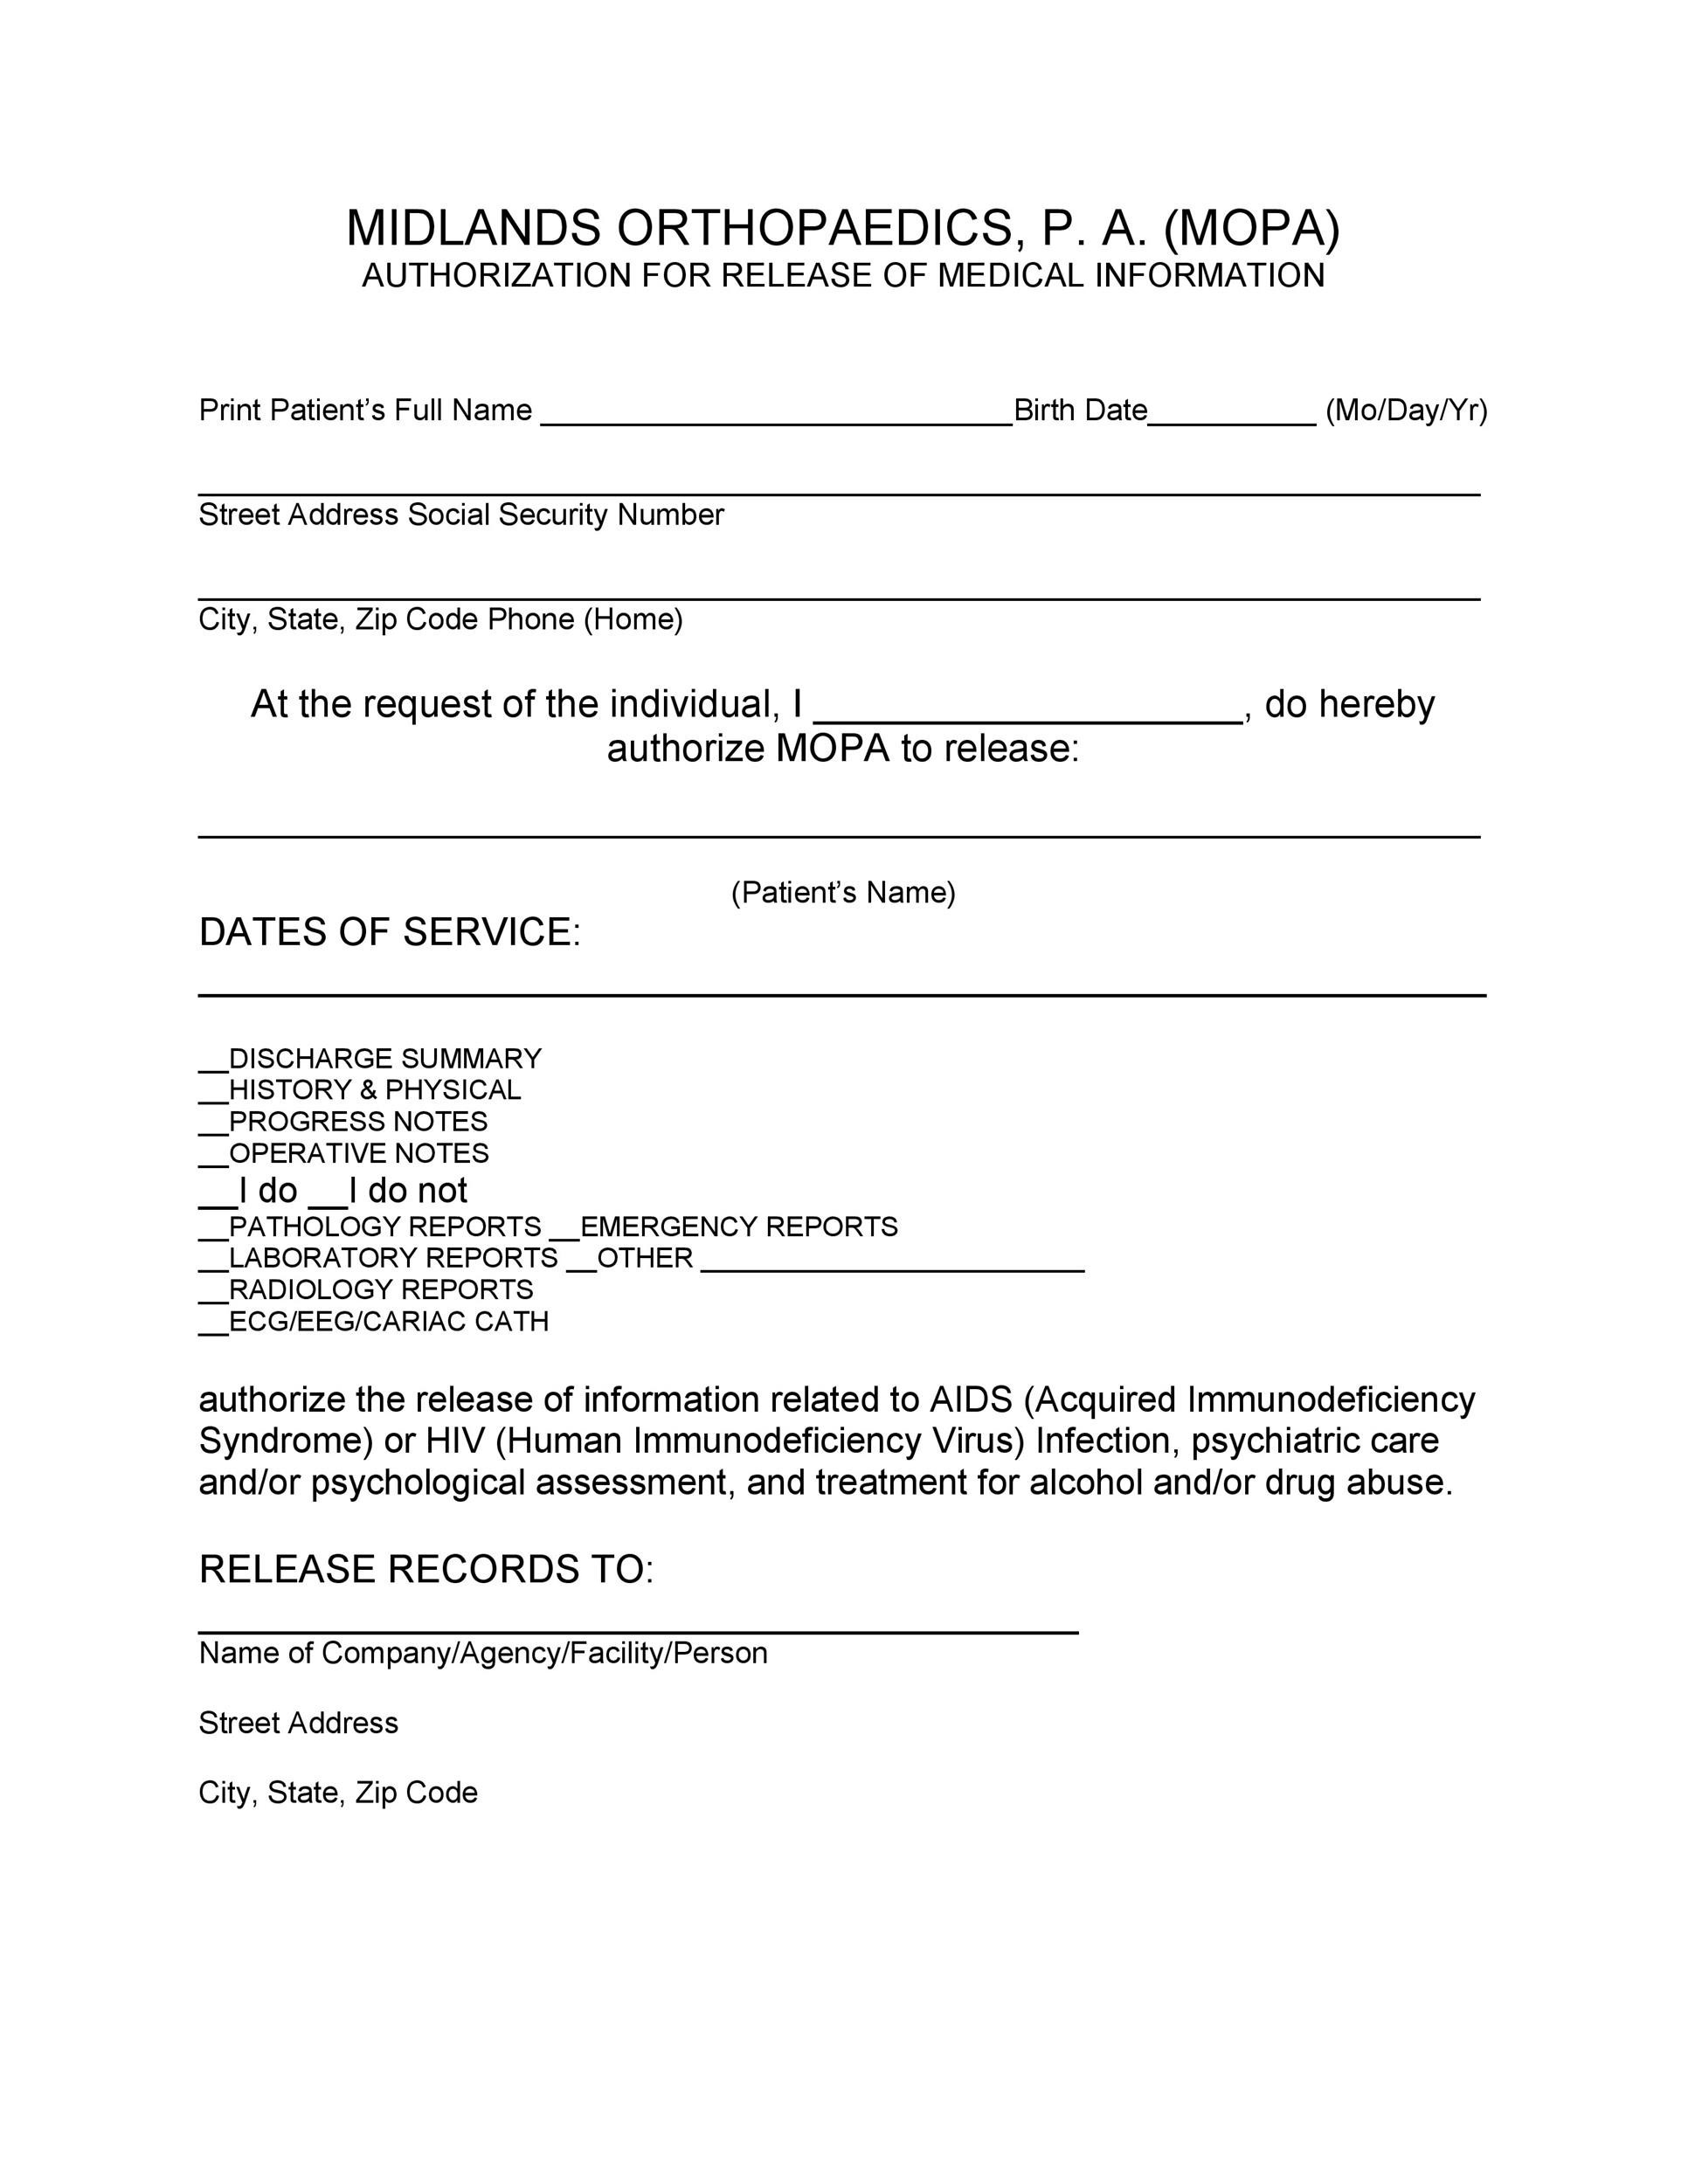 Photo Release Form Templates For Ms Word | Word Document